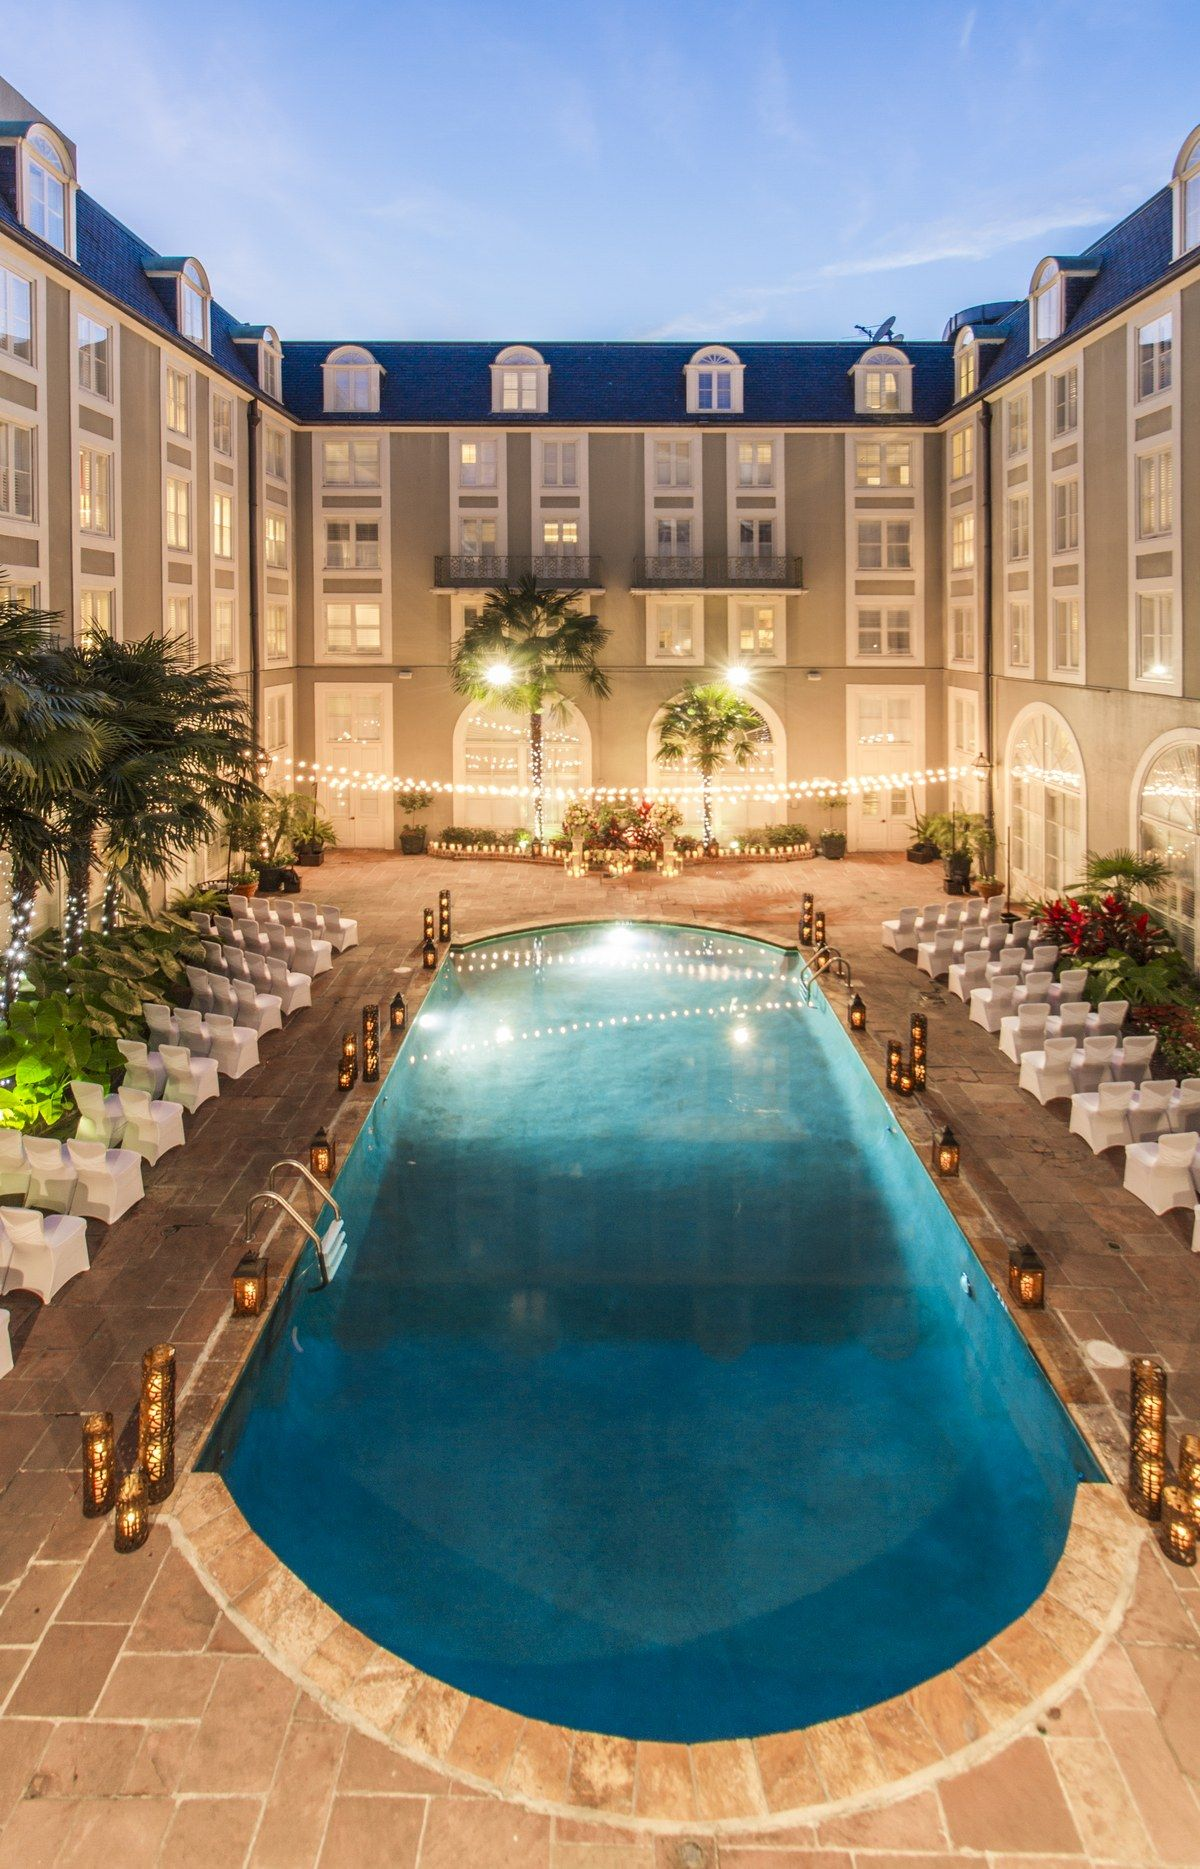 Hotels In New Orleans >> Bourbon Orleans Hotel New Orleans Louisiana United States